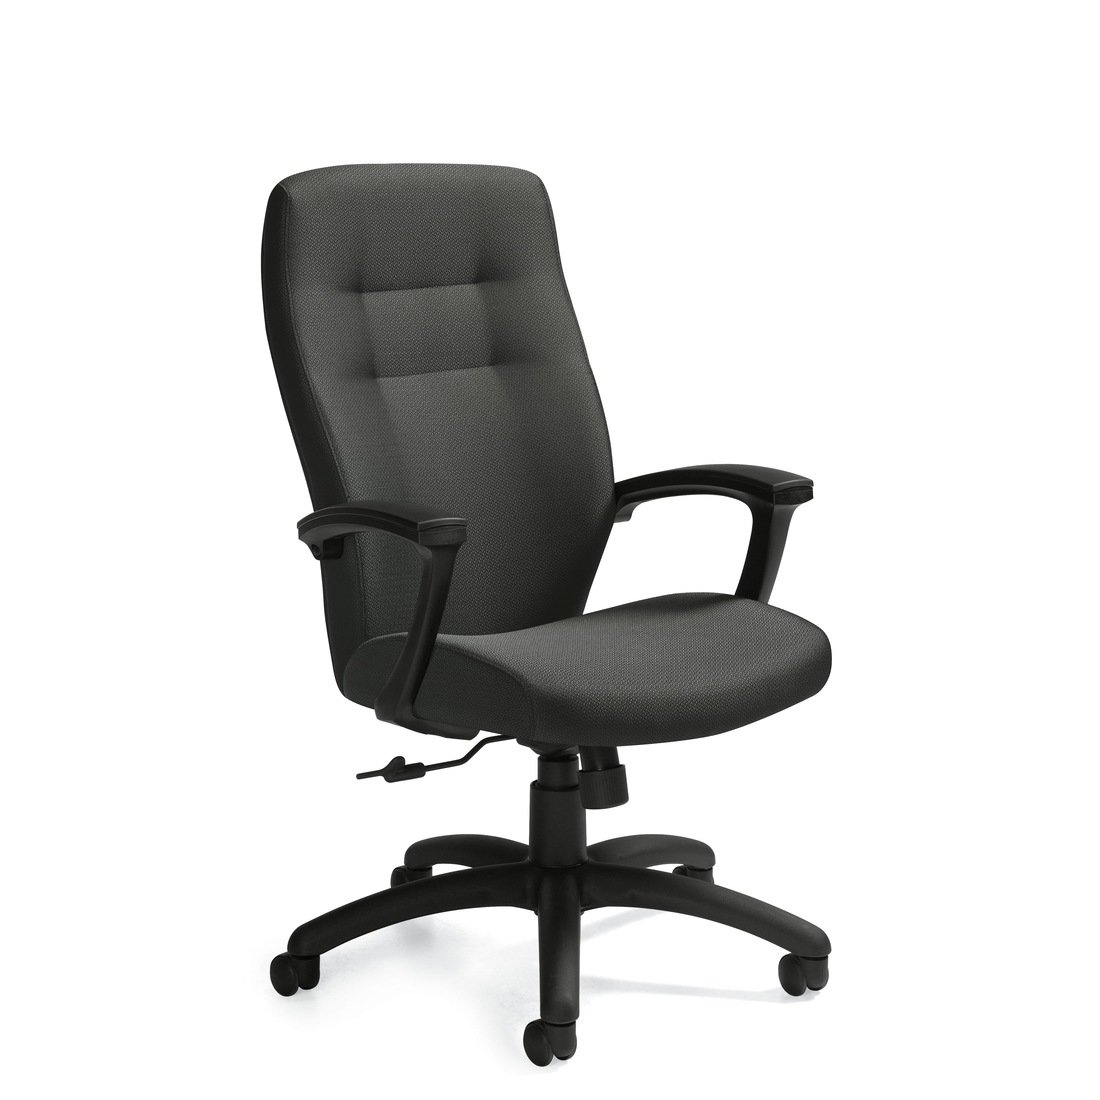 Synopsis high back tilter chair, model 5090-4. This chair has been placed on a white background.